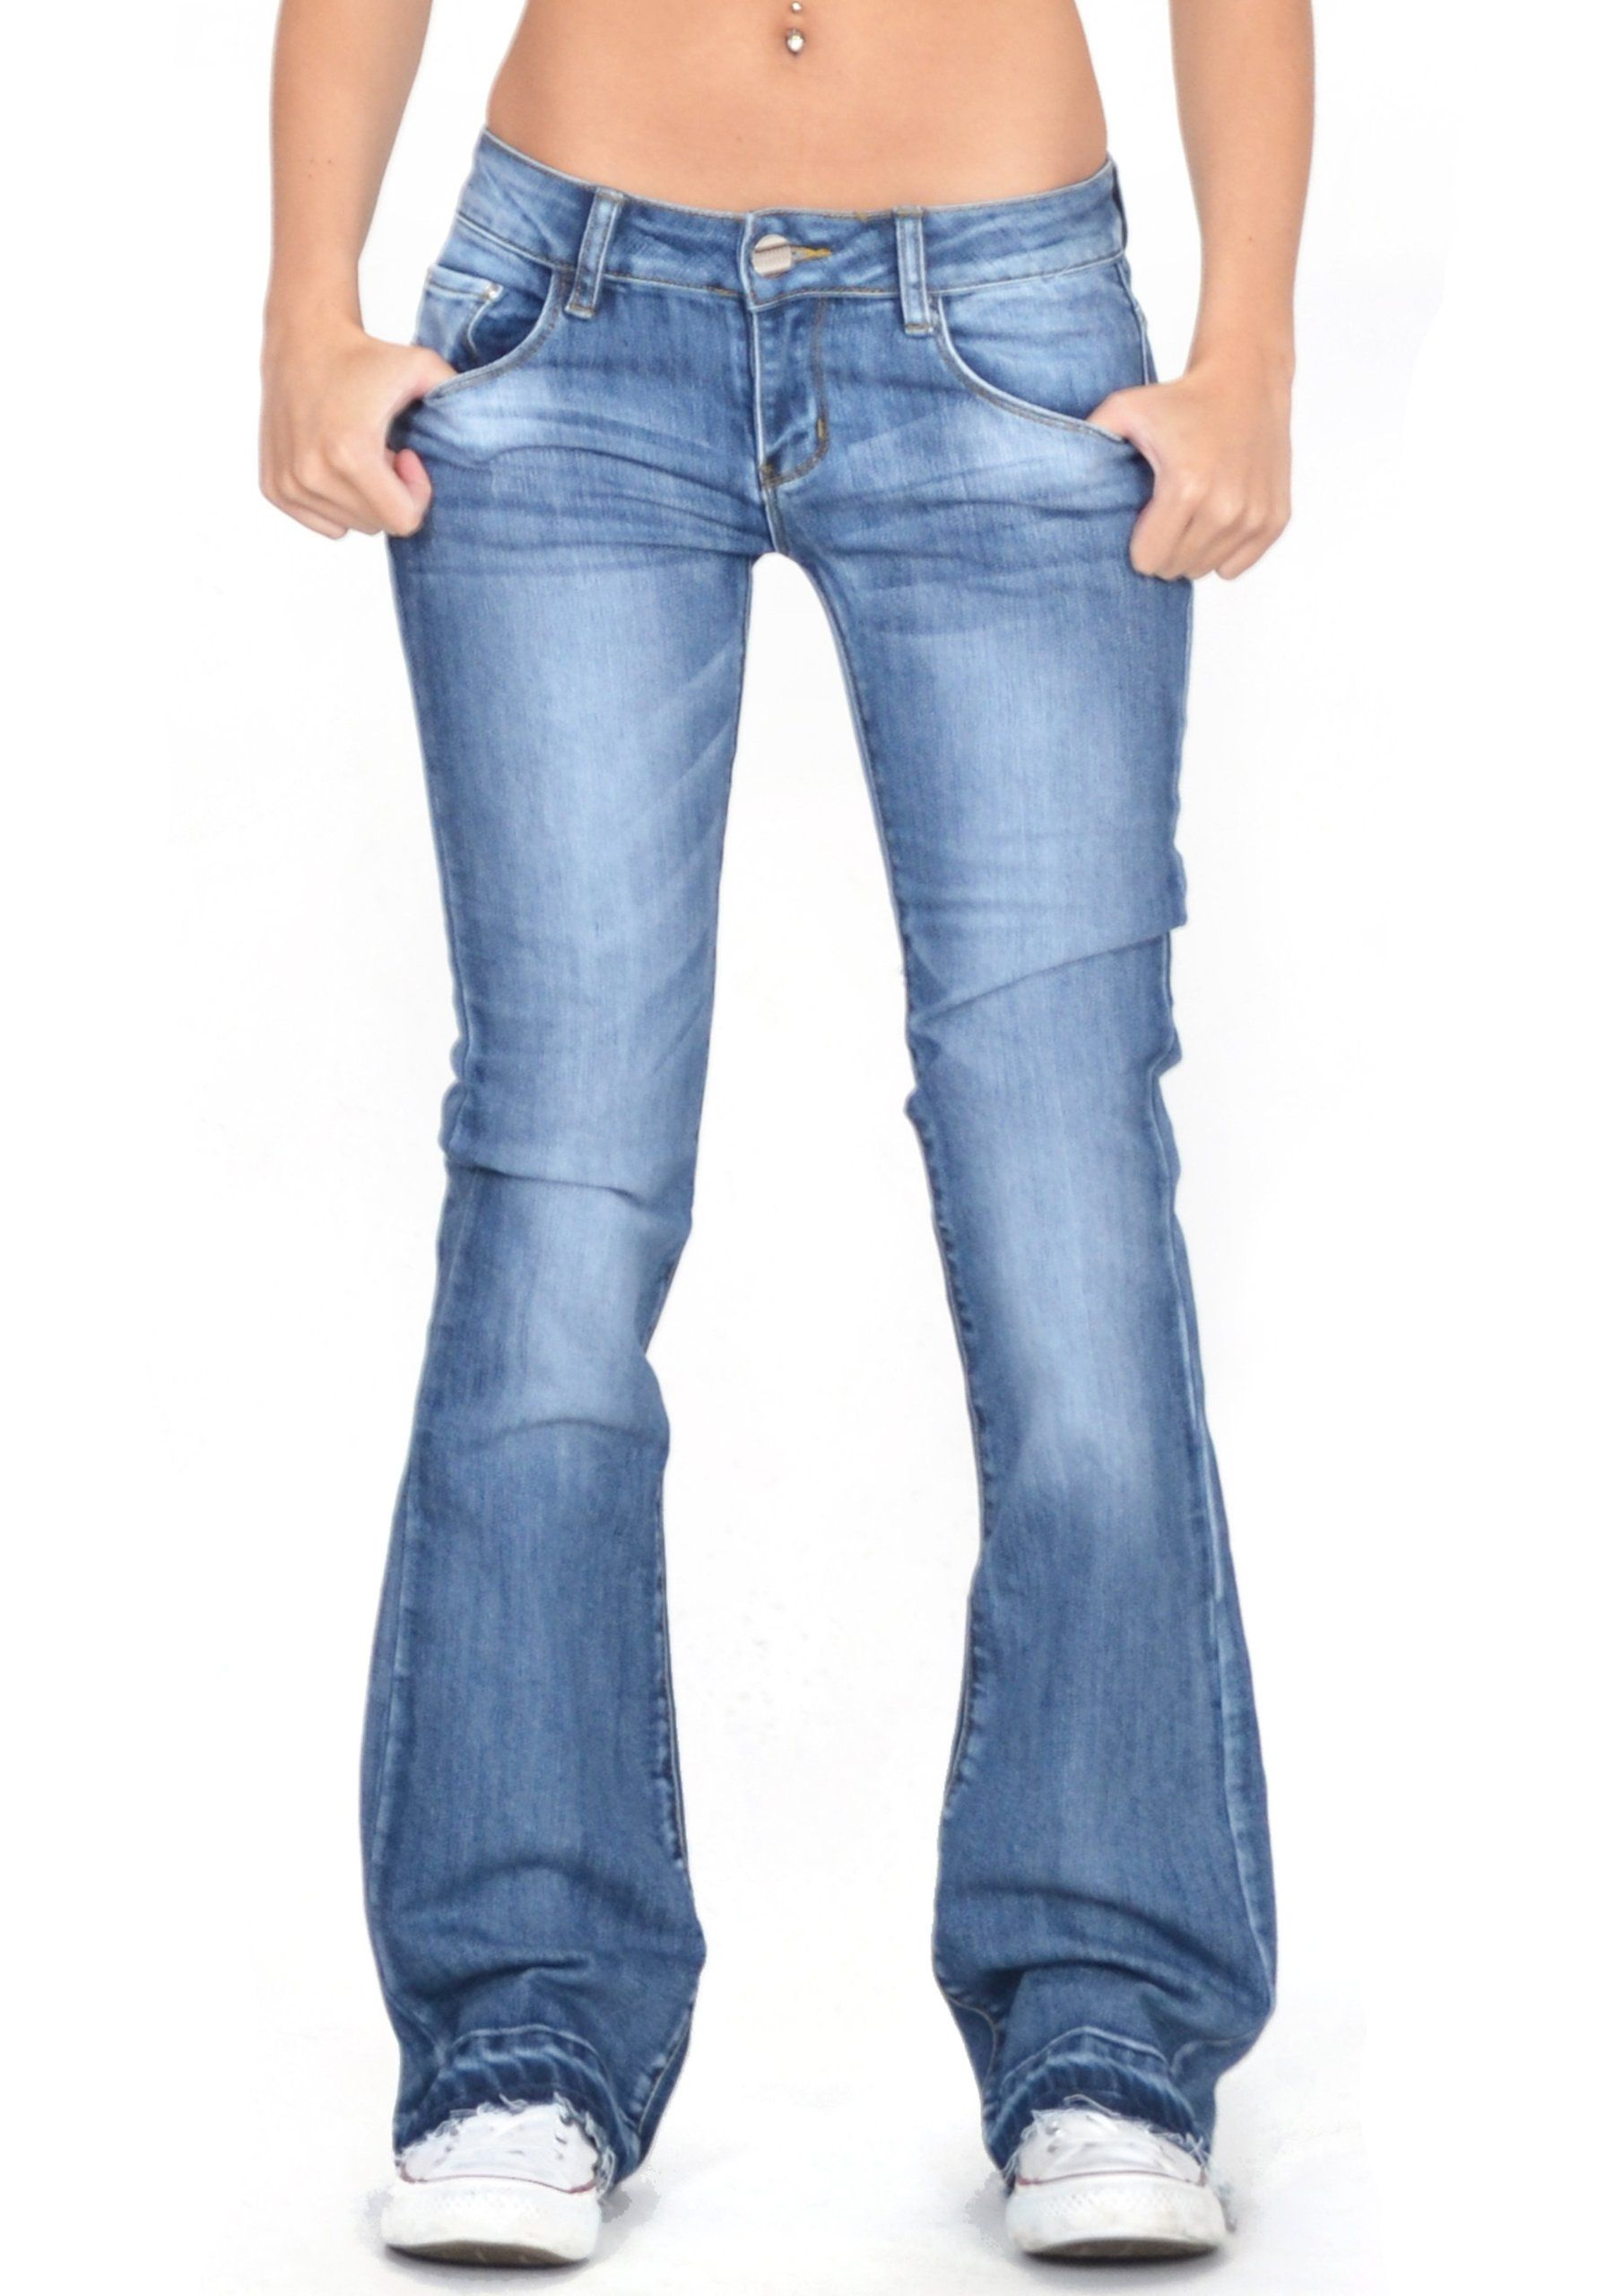 4c5010a7700 H Women's Faded Flared Hipster Bootcut Stretch Jeans with Frayed Leg Ends -  Blue (US 12 / UK14)